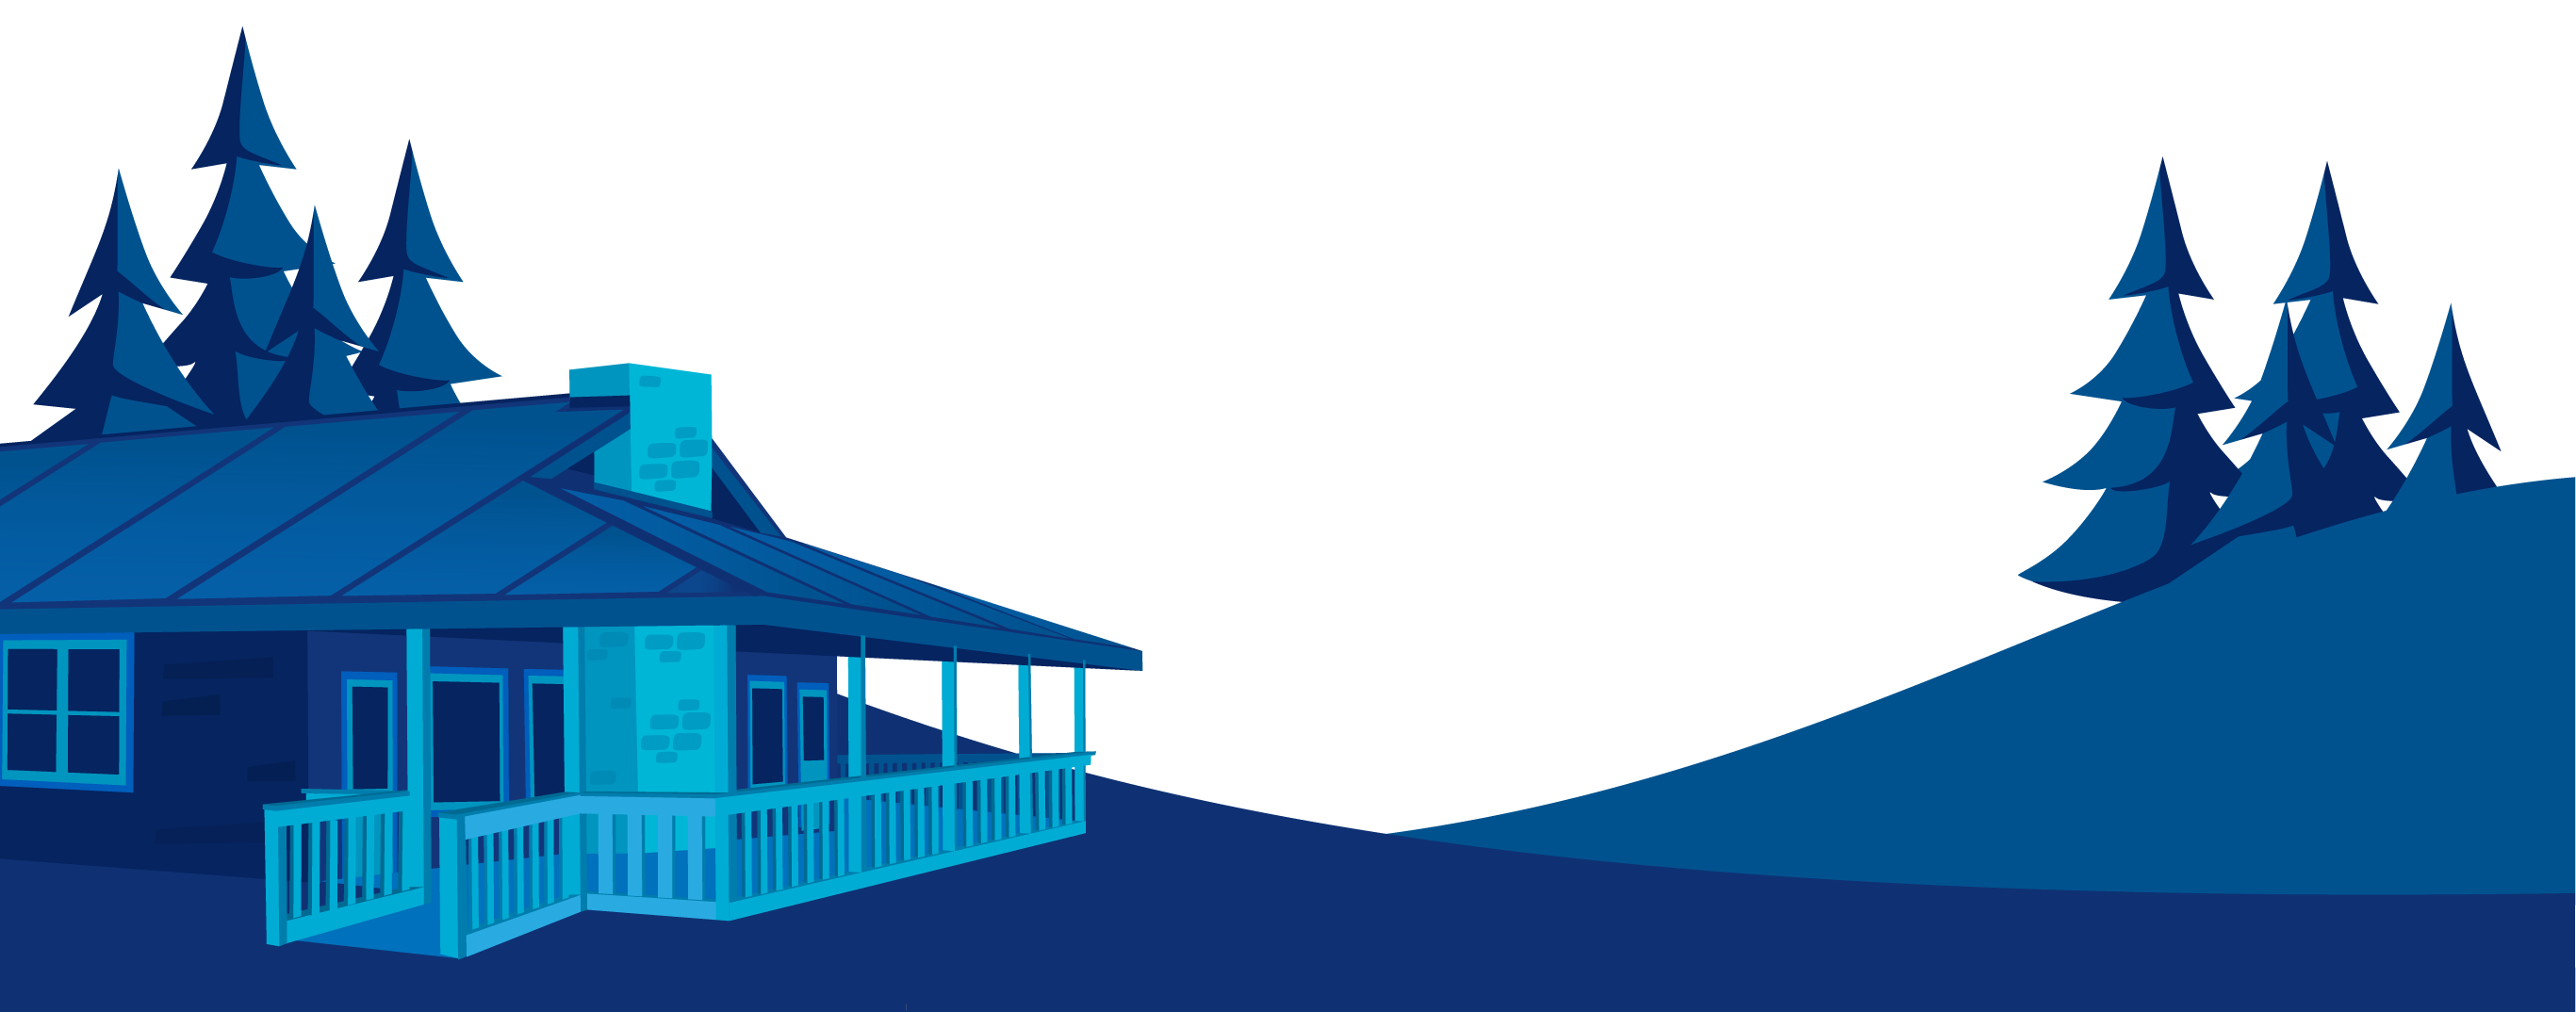 Illustration of the Lodge at Sherlock Springs in Blue Hues